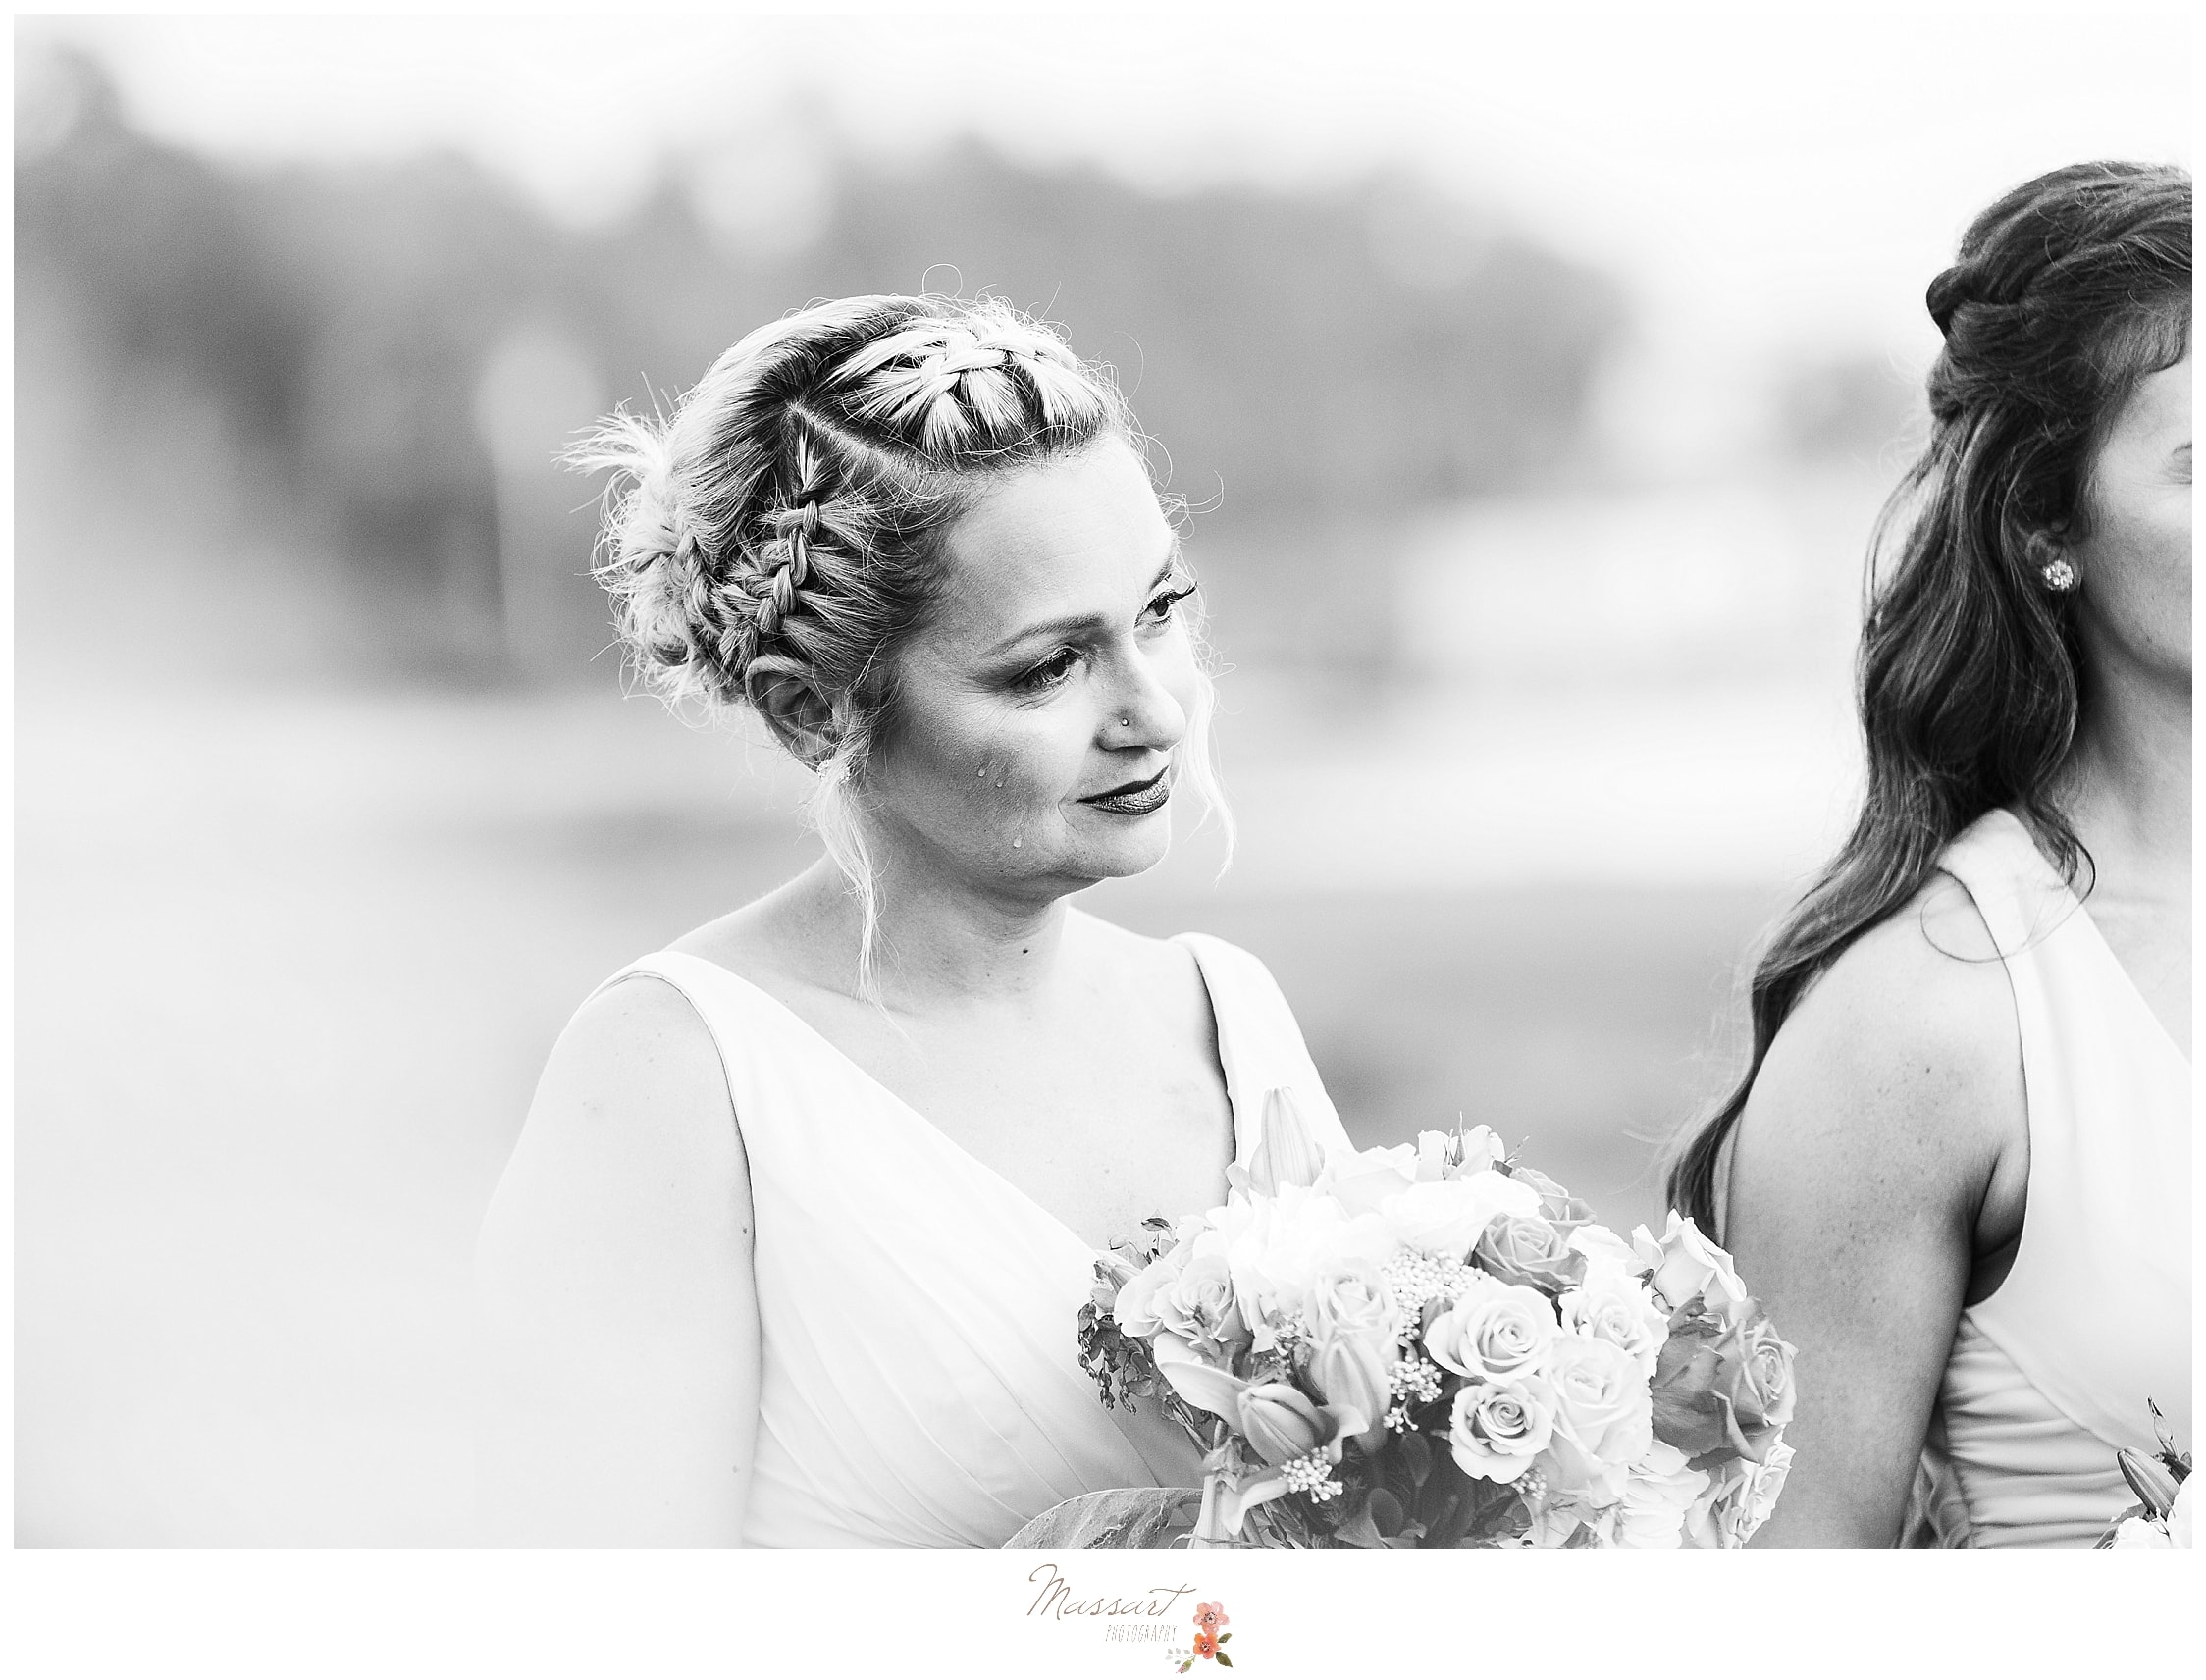 Bridesmaid gets emotional during wedding ceremony at Harbor Lights in RI photographed by MA, CT and RI wedding photographers Massart Photography.